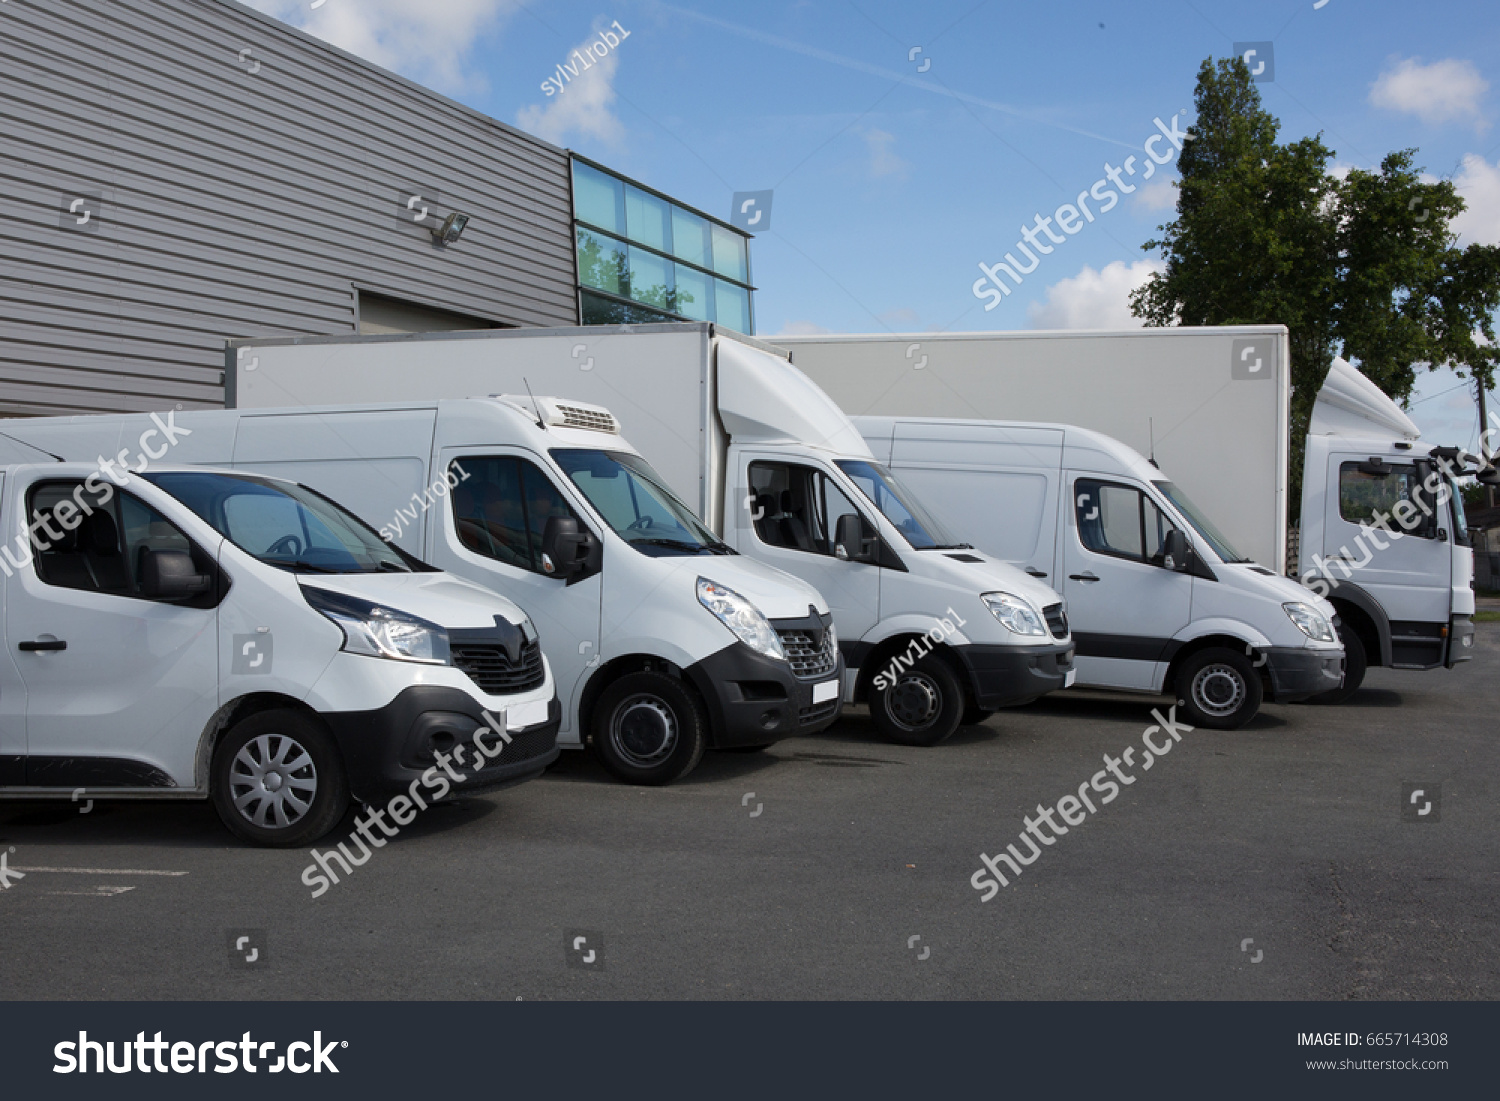 Several cars vans and trucks parked in parking lot for sale #665714308